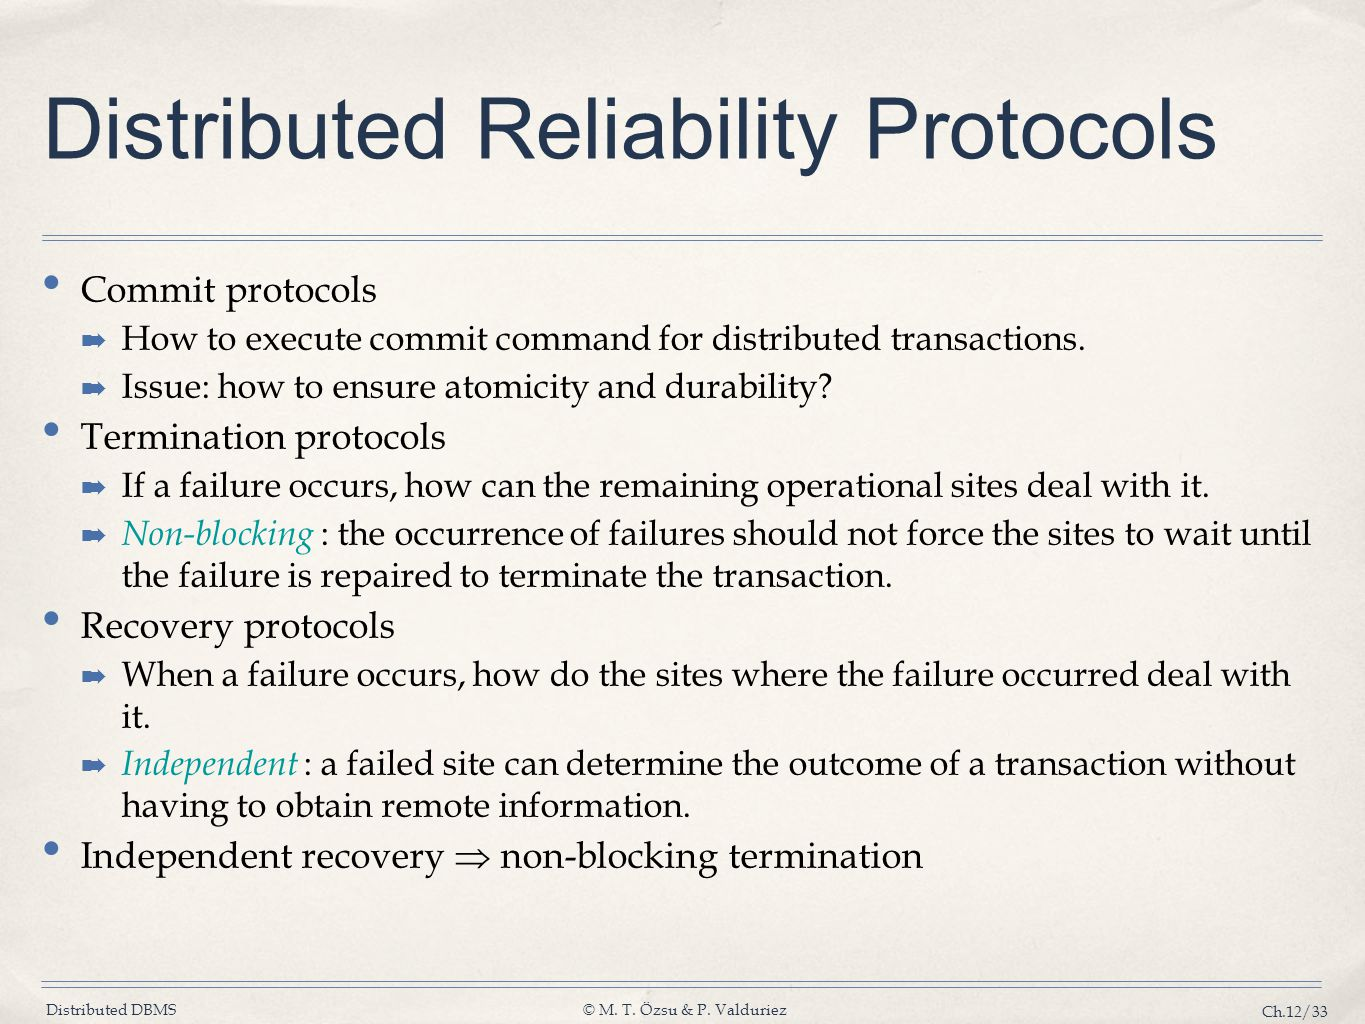 Distributed DBMS© M. T. Özsu & P. Valduriez Ch.12/33 Distributed Reliability Protocols Commit protocols ➡ How to execute commit command for distribute